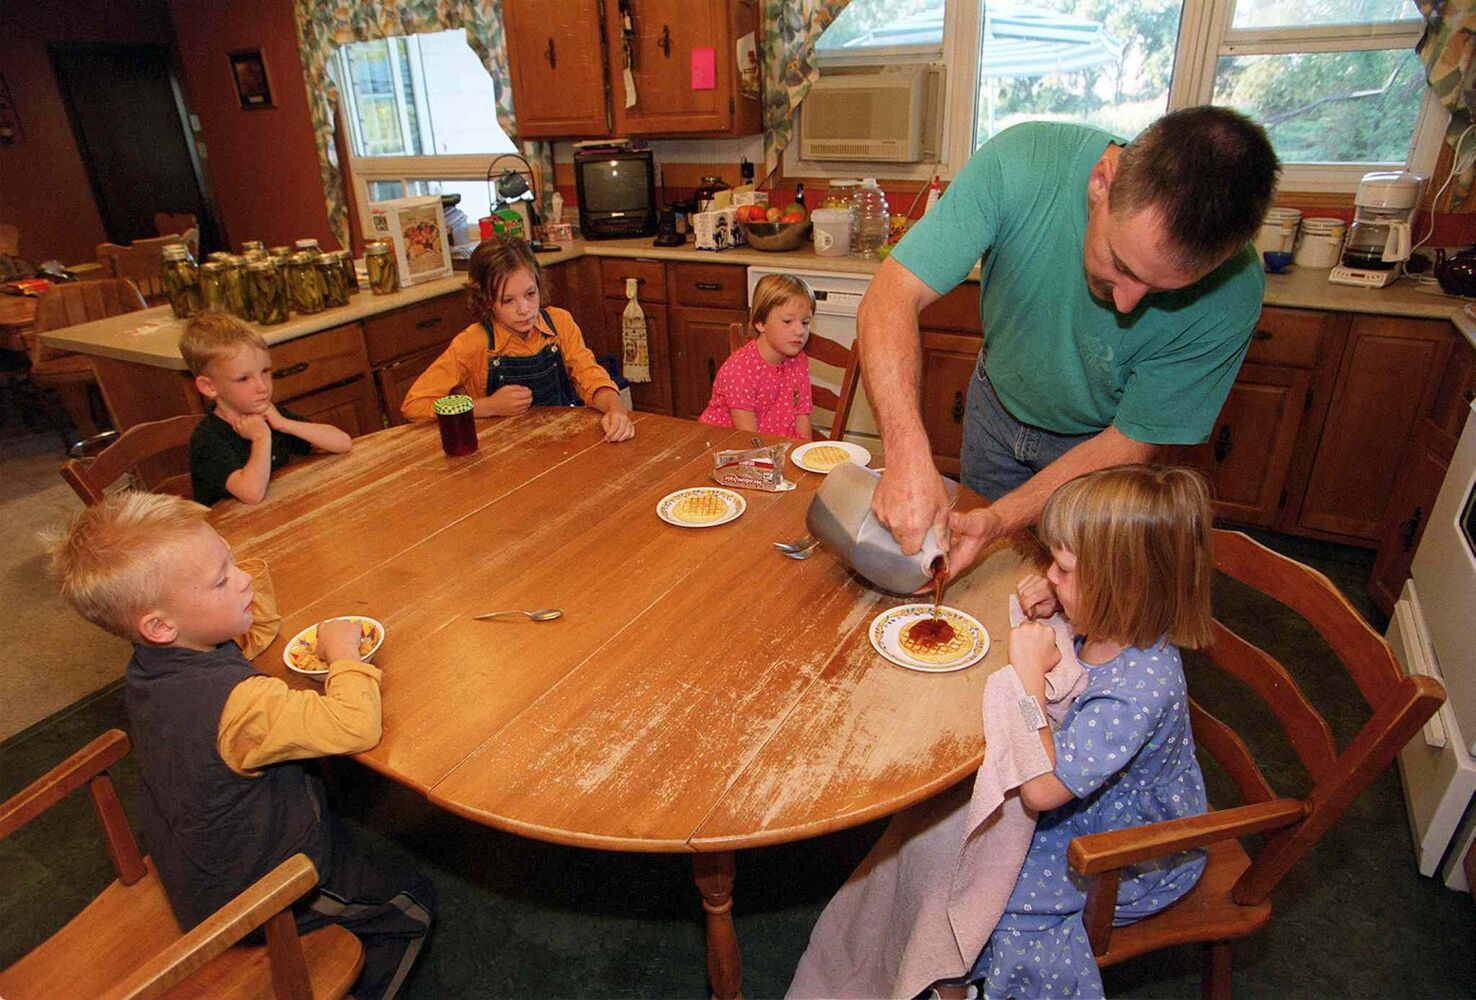 Ed Lavich pours syrup on his daughter Maryn's waffle on the morning of the children's first day of kindergarten.